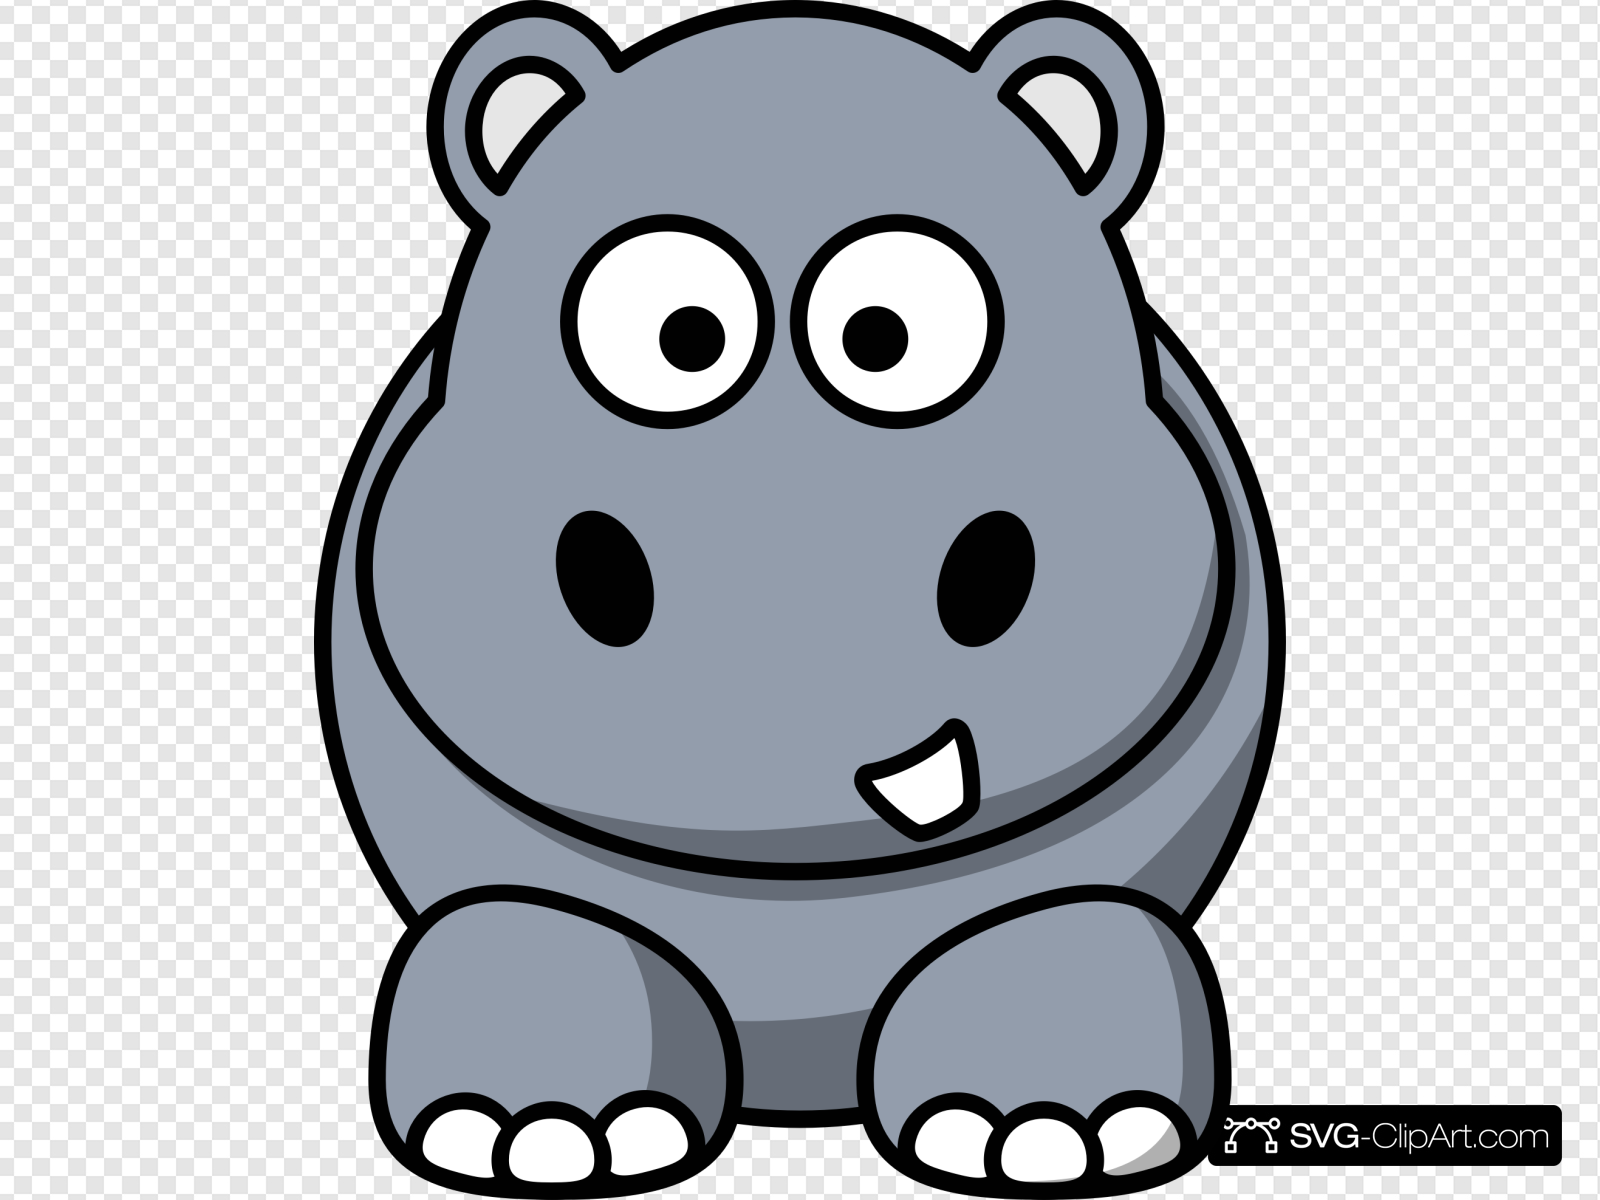 Simple Cartoon Hippo Clip art, Icon and SVG.